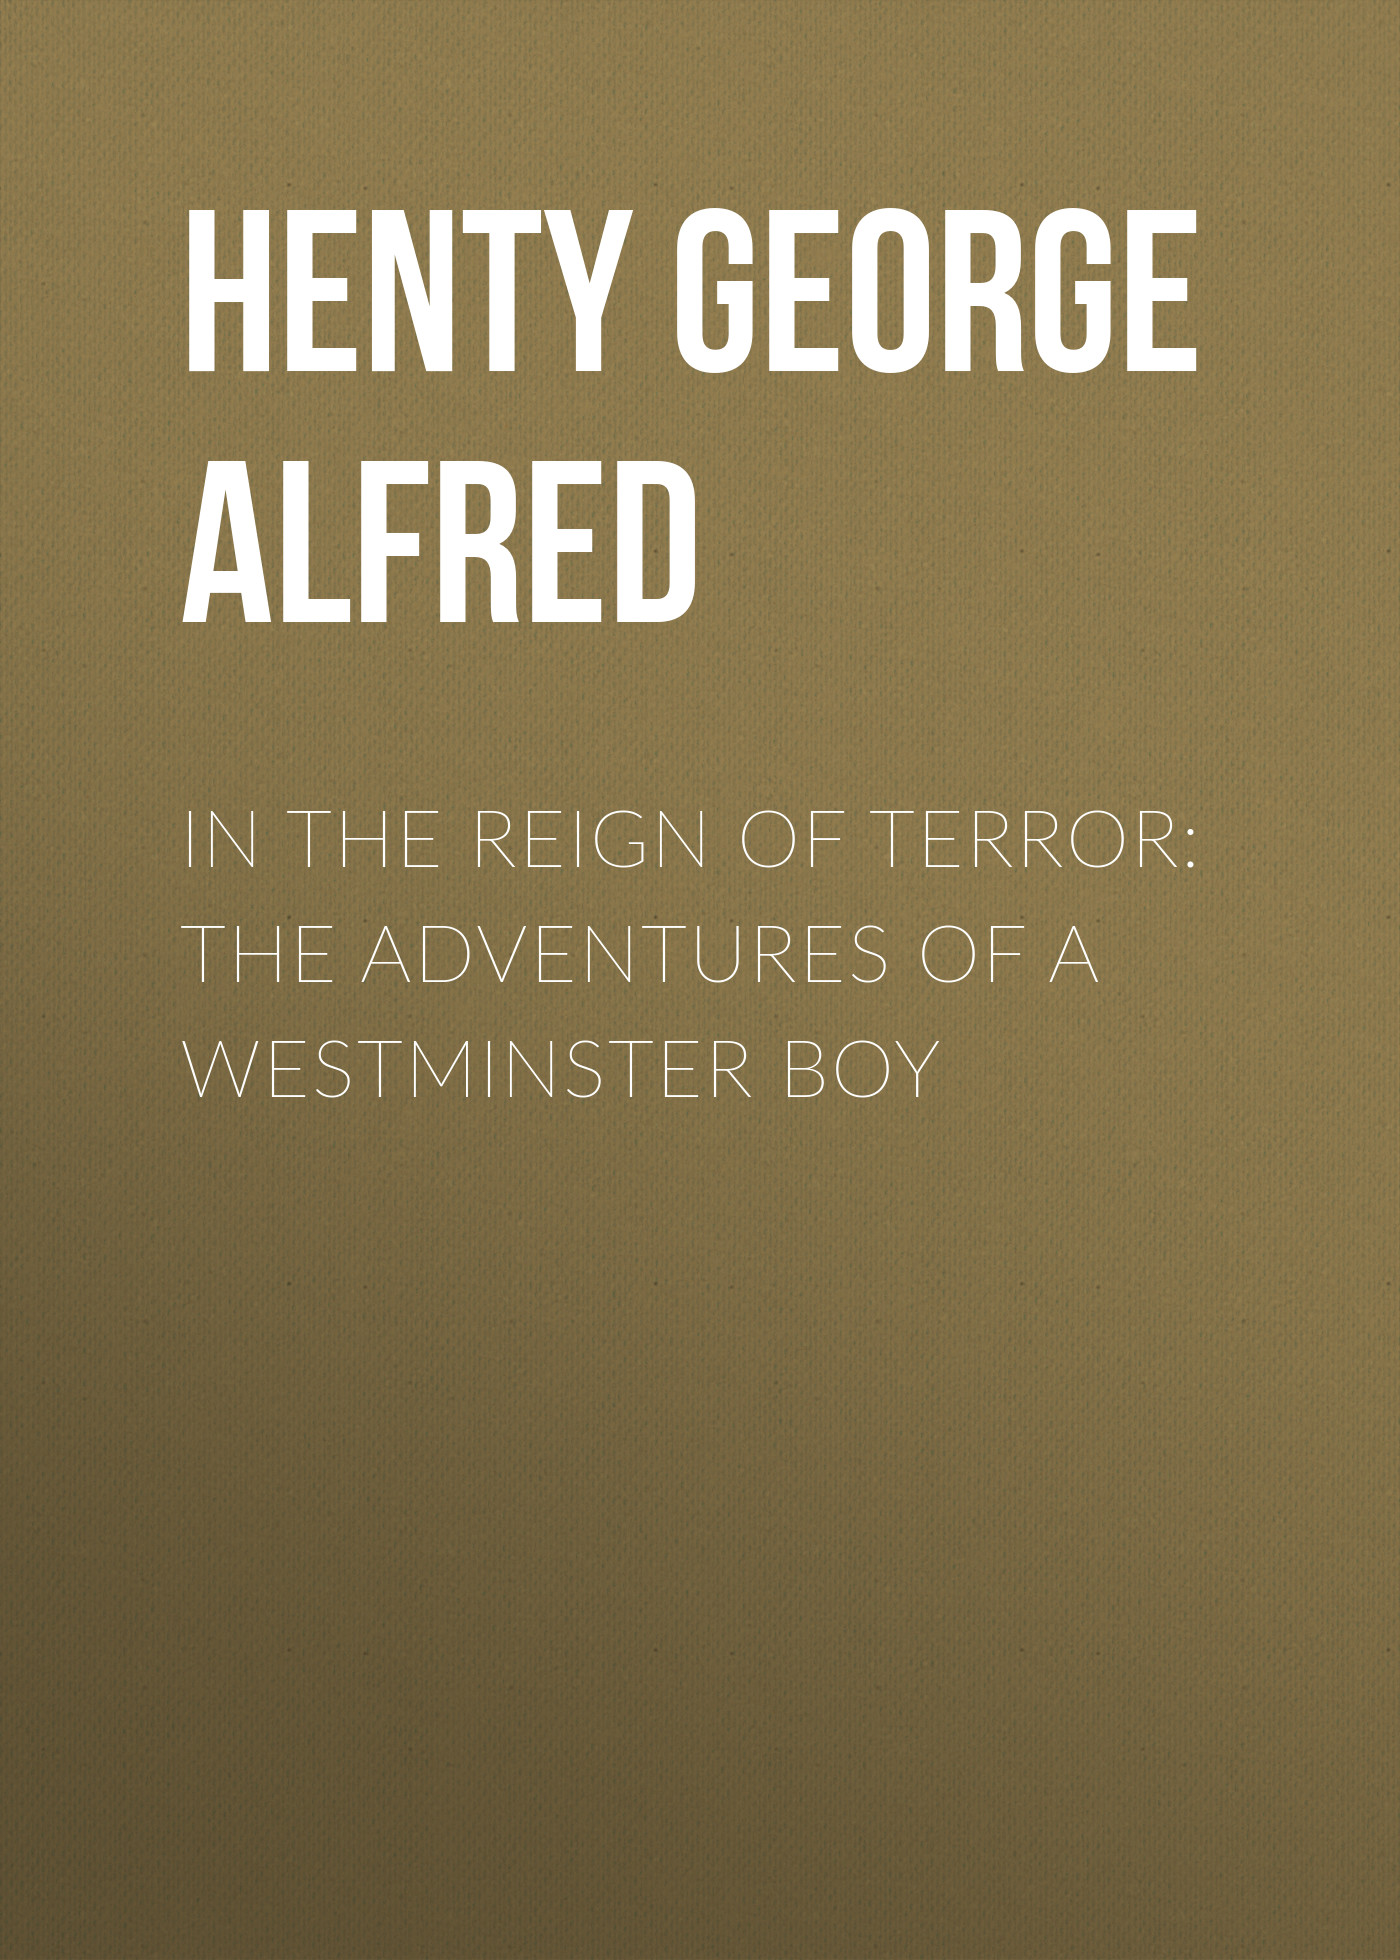 Henty George Alfred In the Reign of Terror: The Adventures of a Westminster Boy henty george alfred in the reign of terror the adventures of a westminster boy